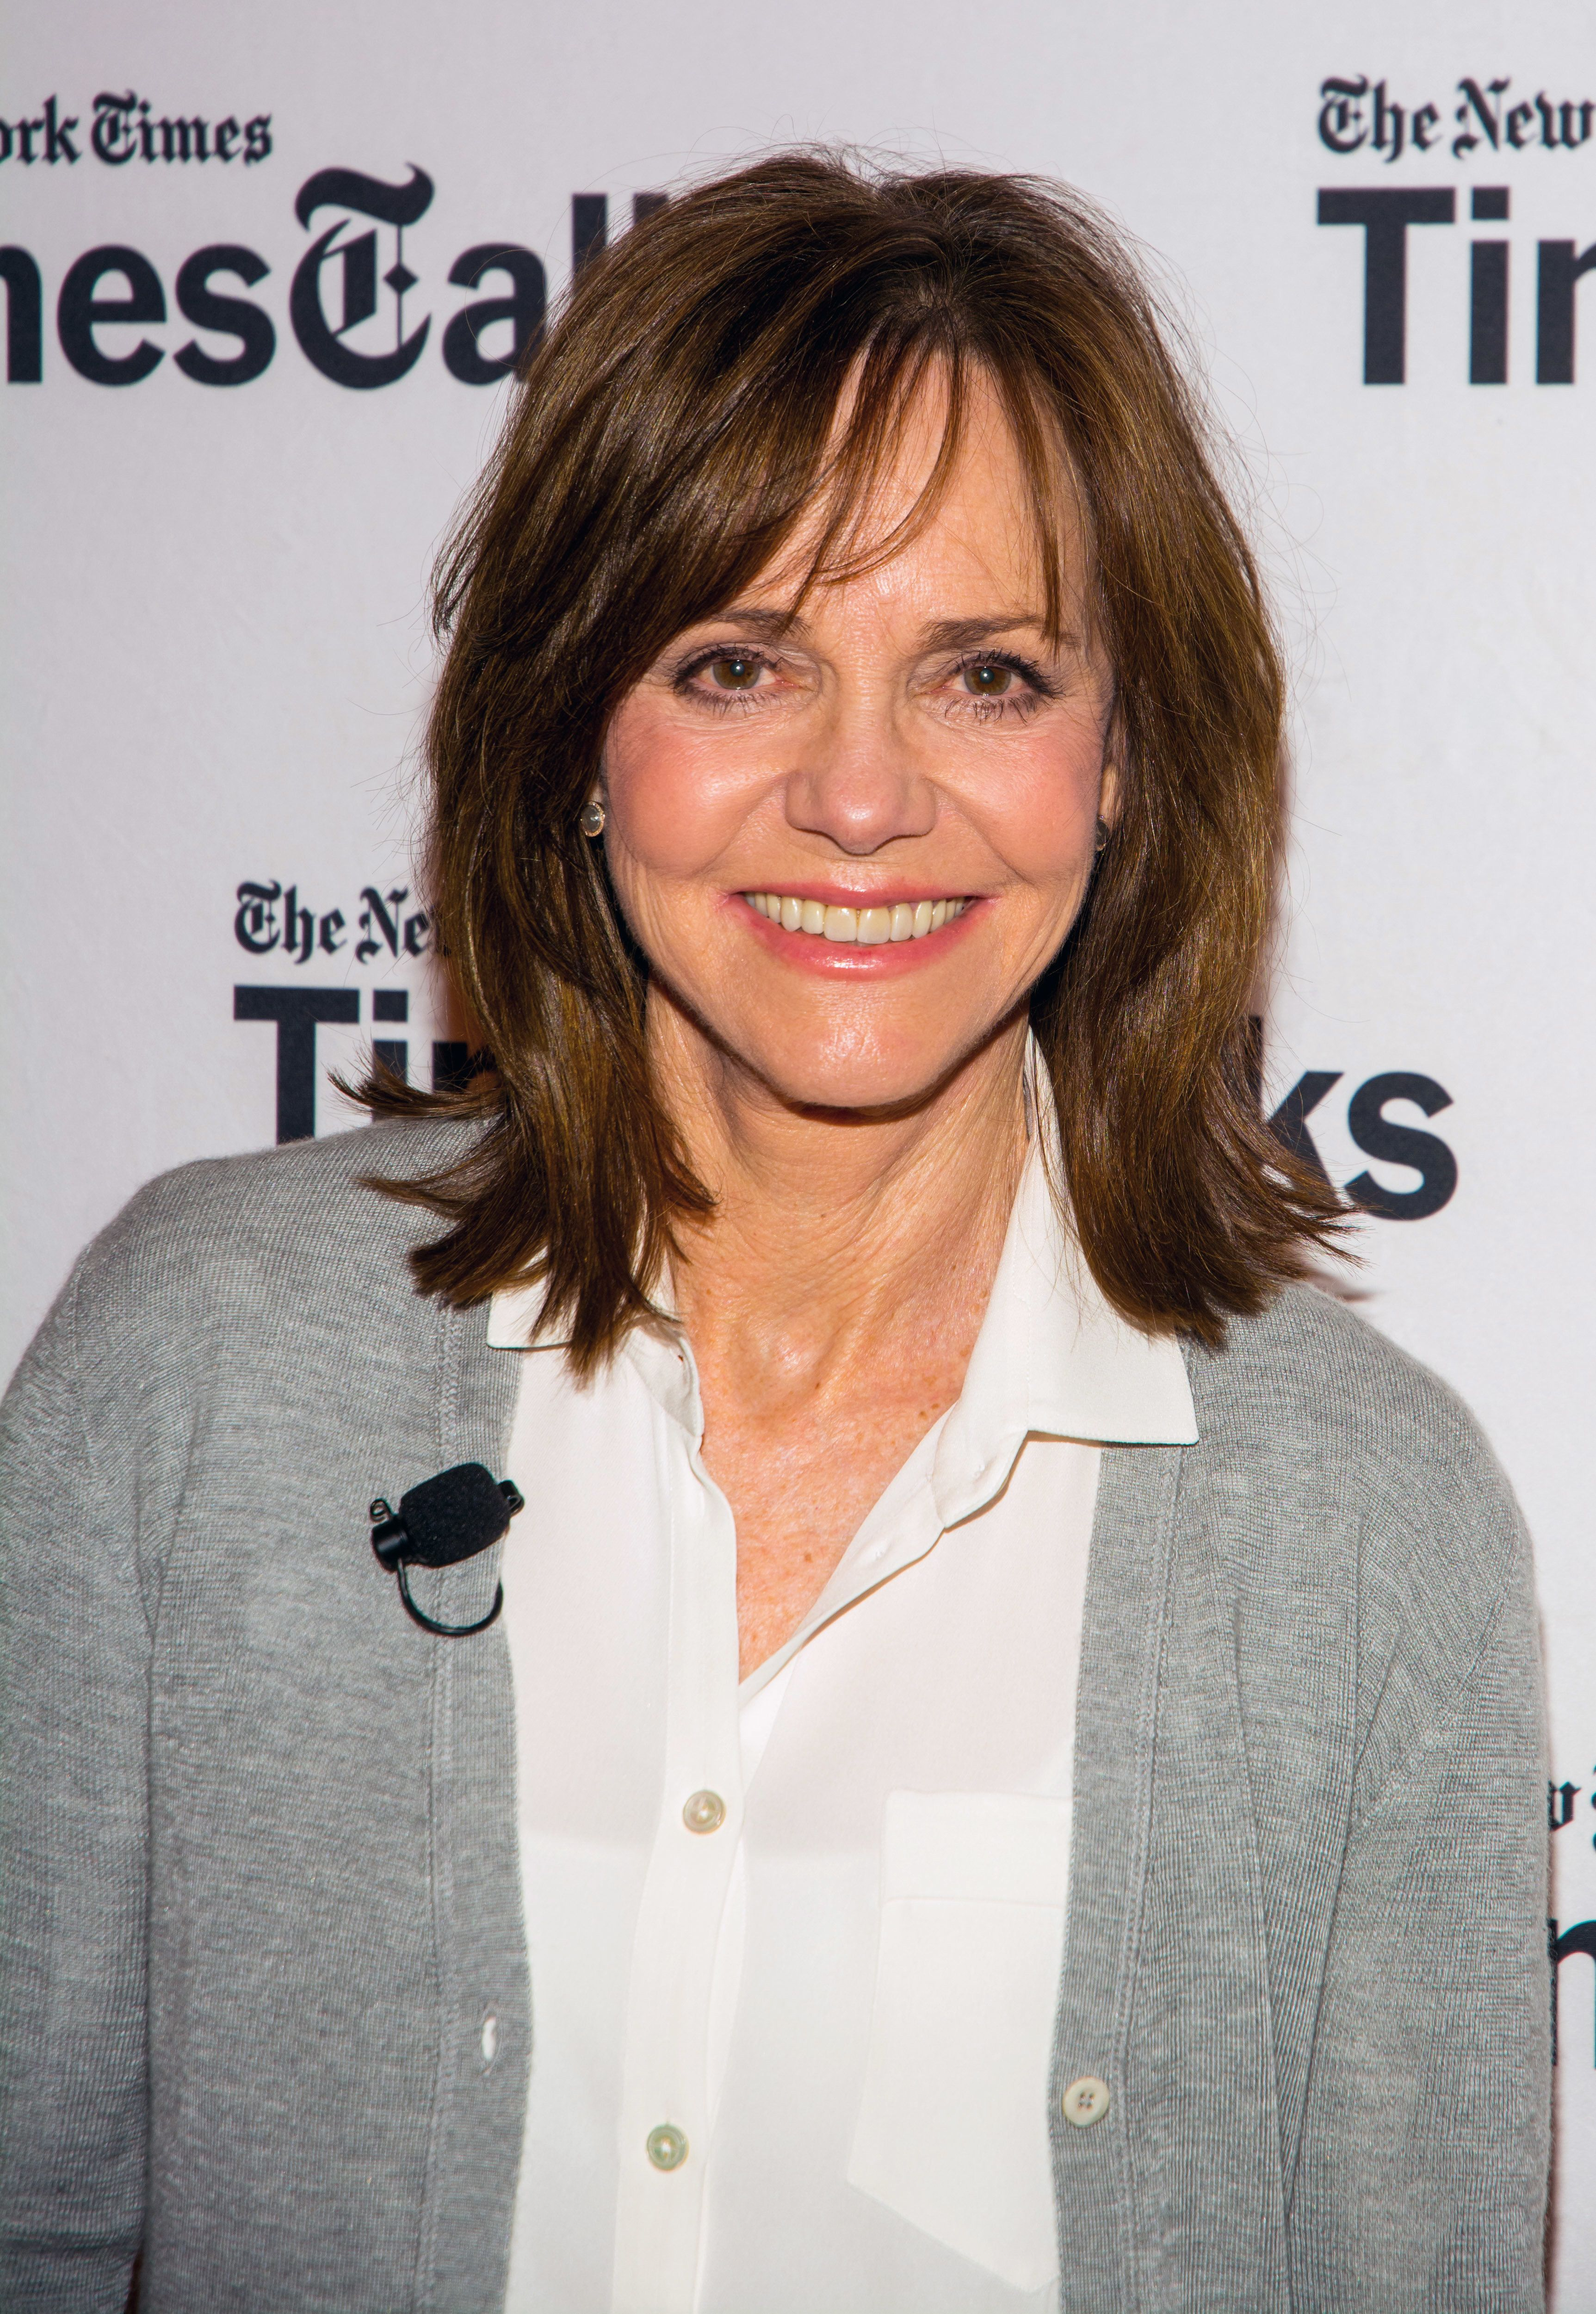 NEW YORK, NEW YORK - MARCH 10:  Sally Field attends the TimesTalks Featuring Sally Field, 'Hello, My Name Is Doris' at TheTimesCenter on March 10, 2016 in New York City.  (Photo by Steven A Henry/WireImage)